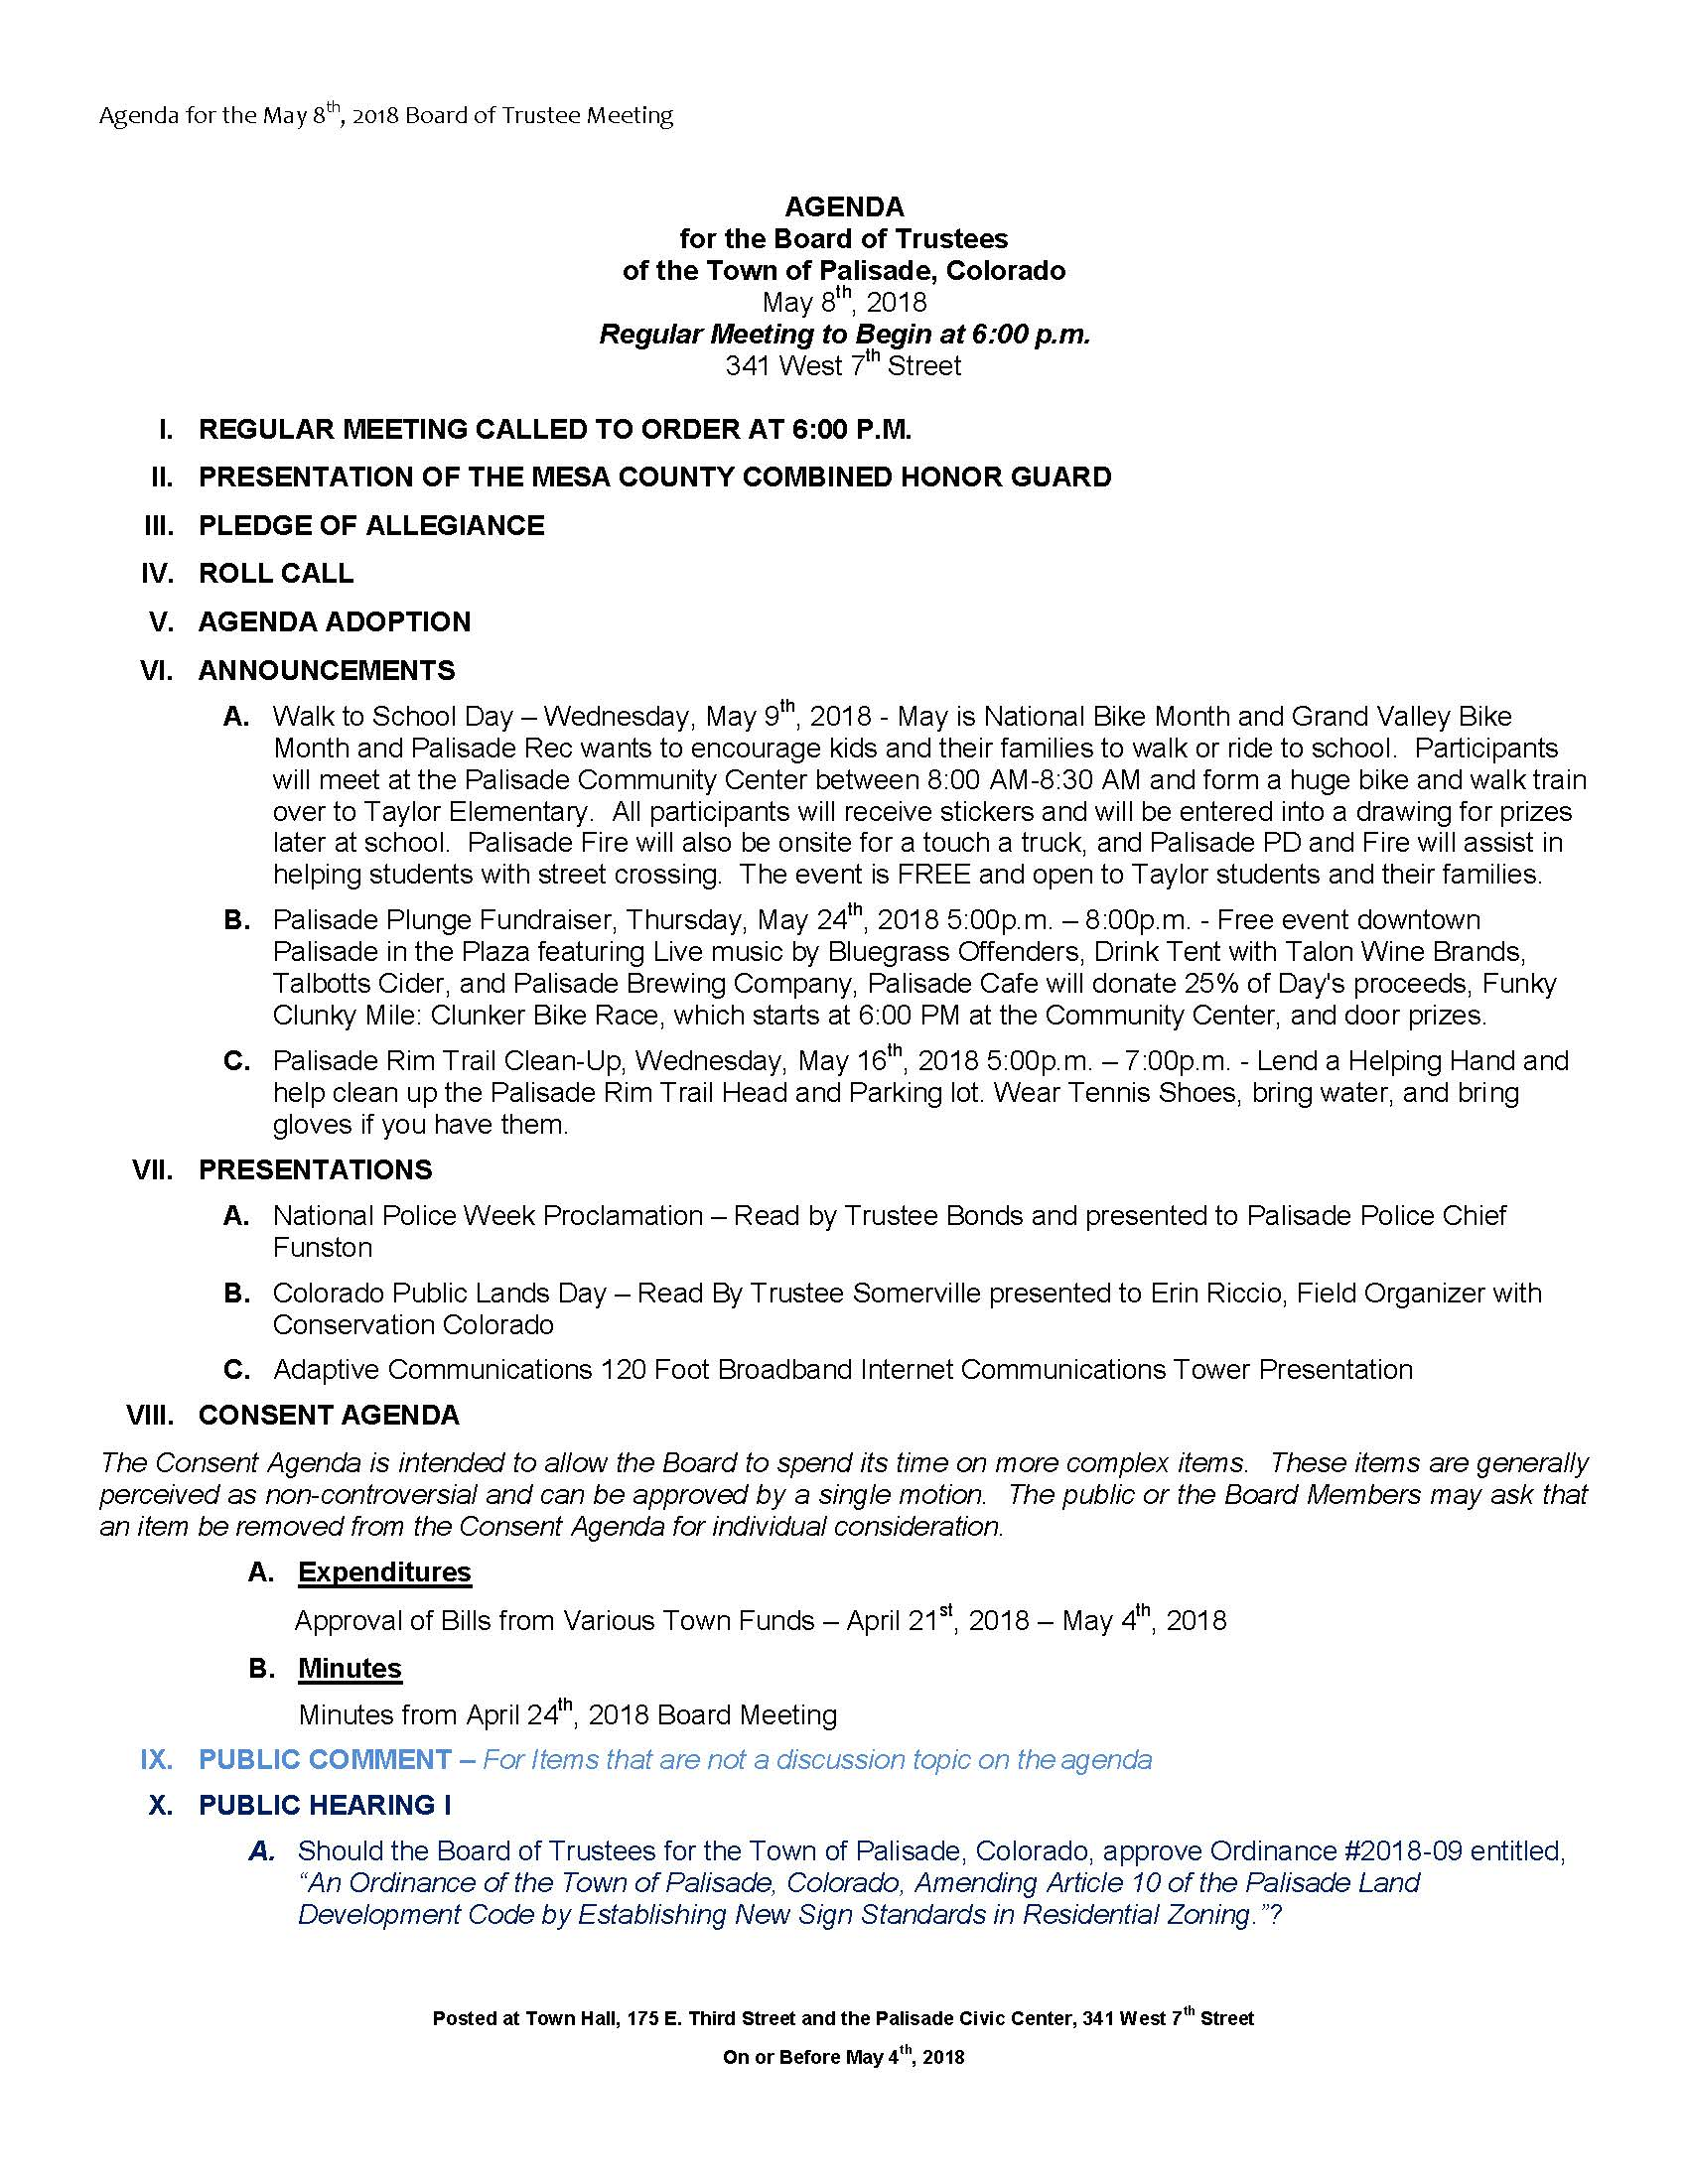 May 8th 2018 Board Meeting Agenda Page 1